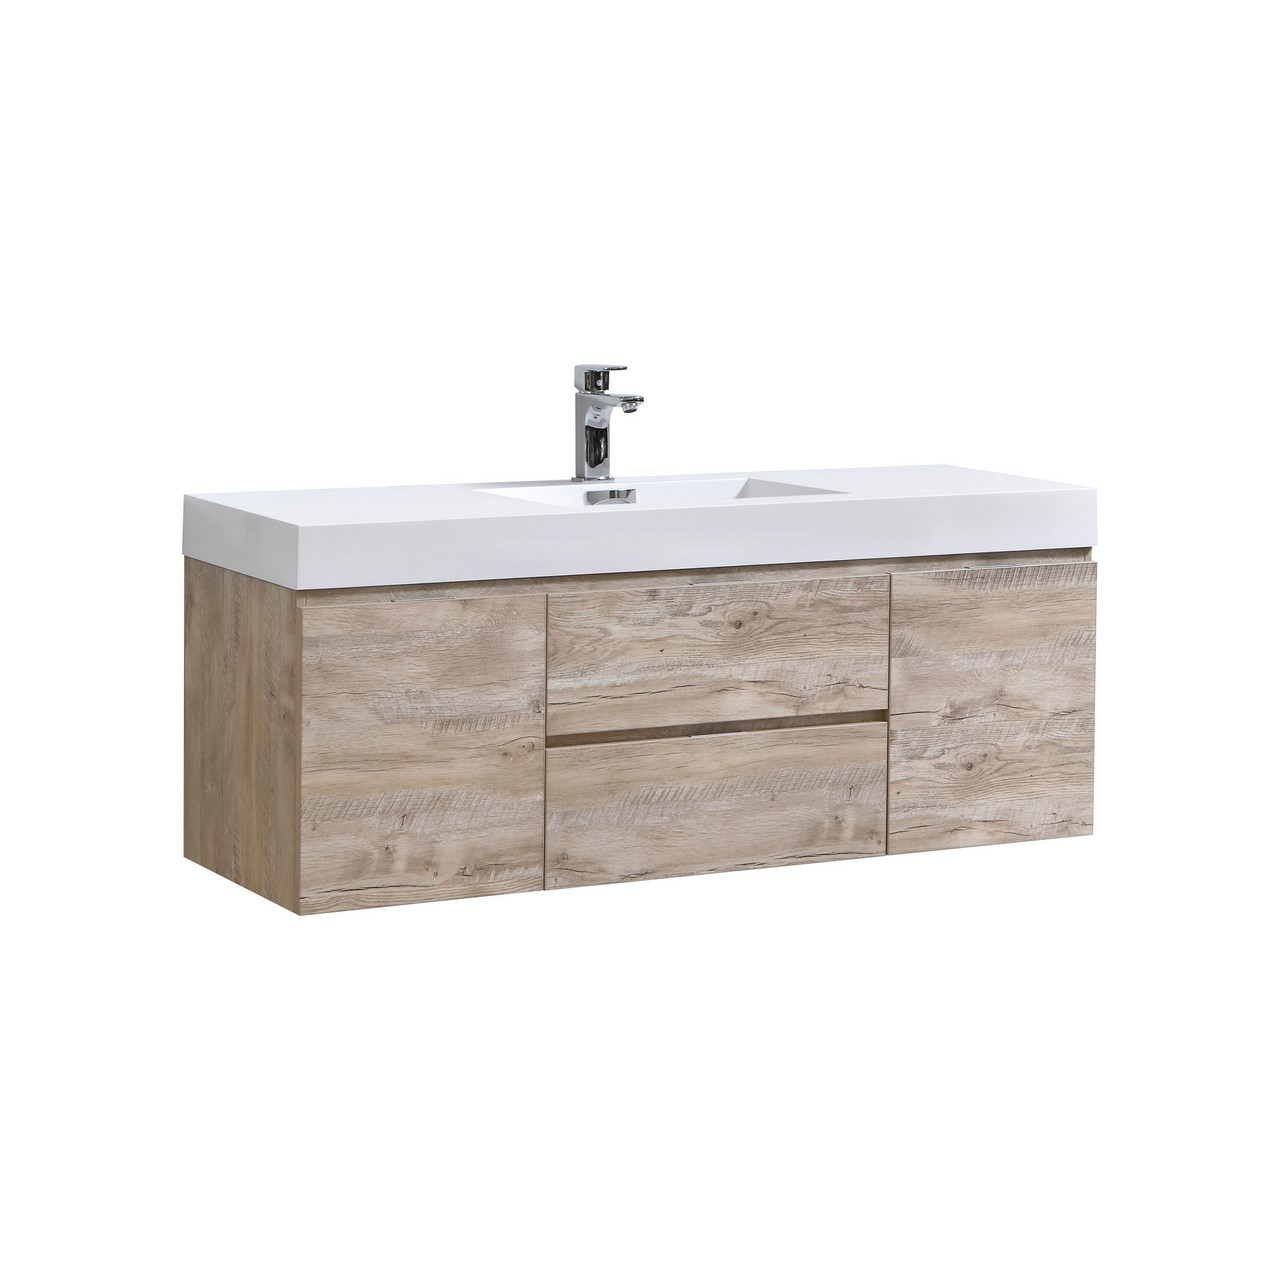 "Modern Lux 60"" Single Sink Nature Wood Wall Mount Modern Bathroom Vanity"